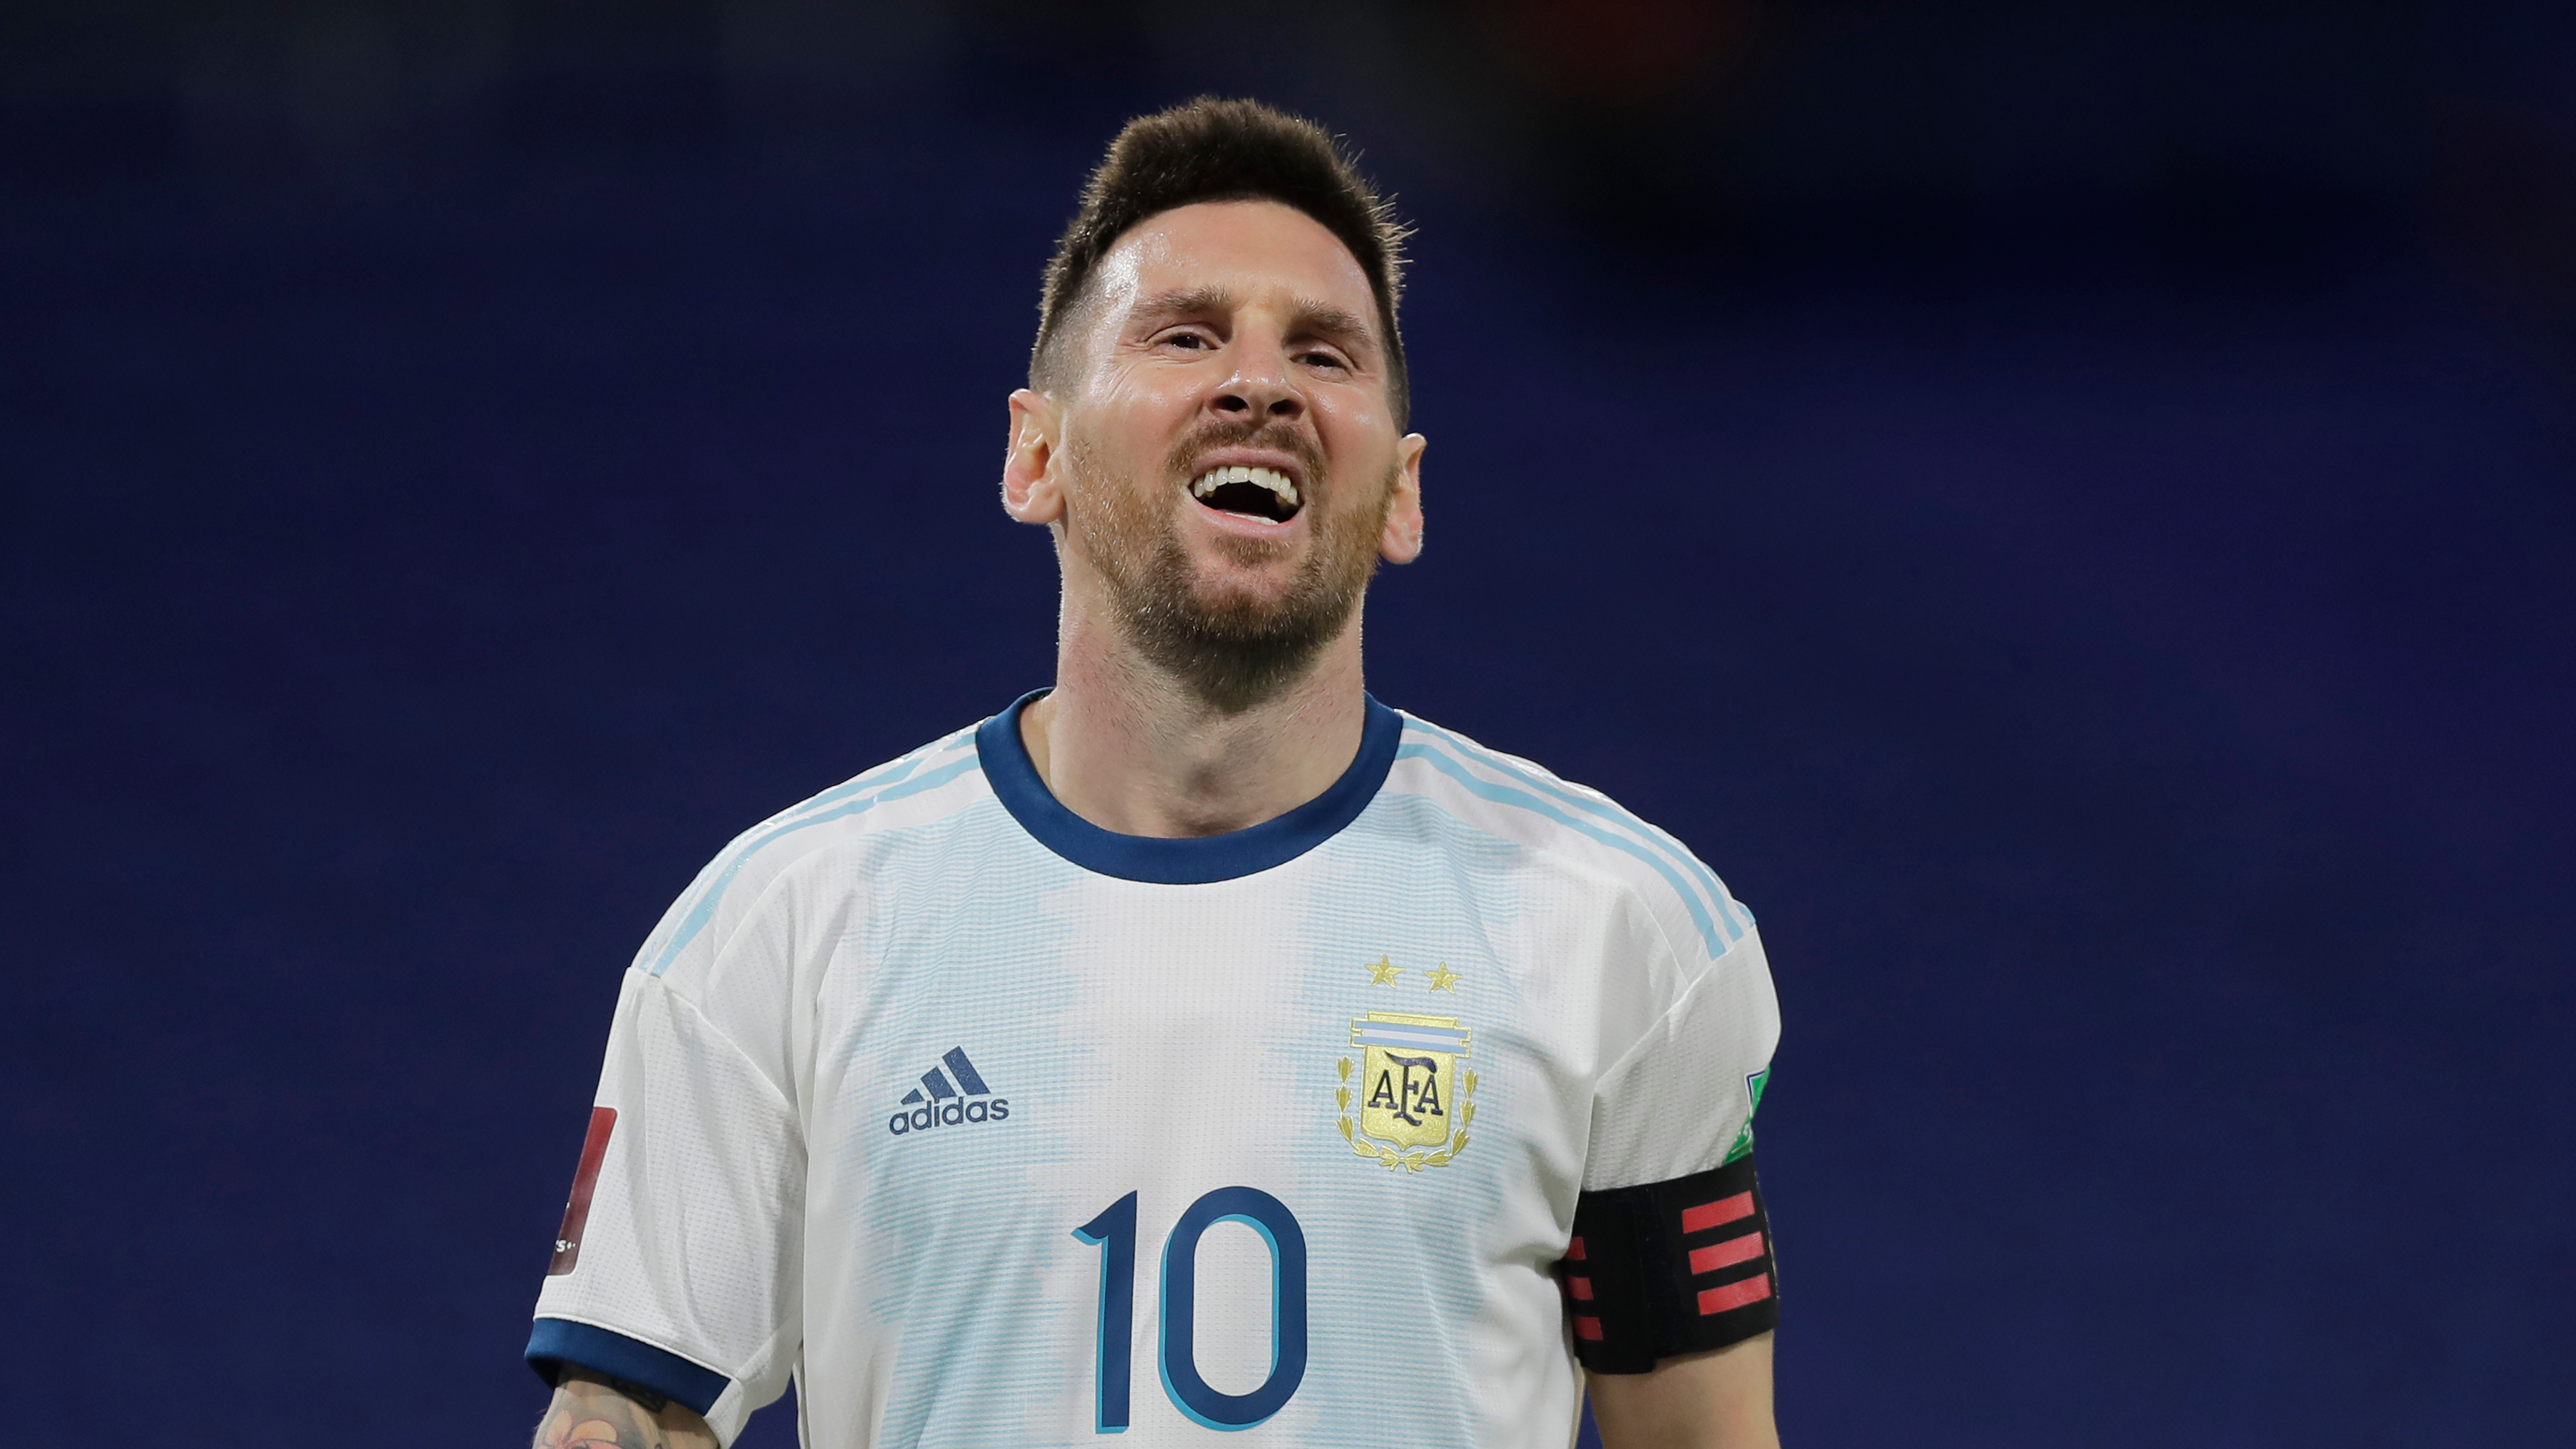 Argentina boss Scaloni pleased with Messi after injury scare